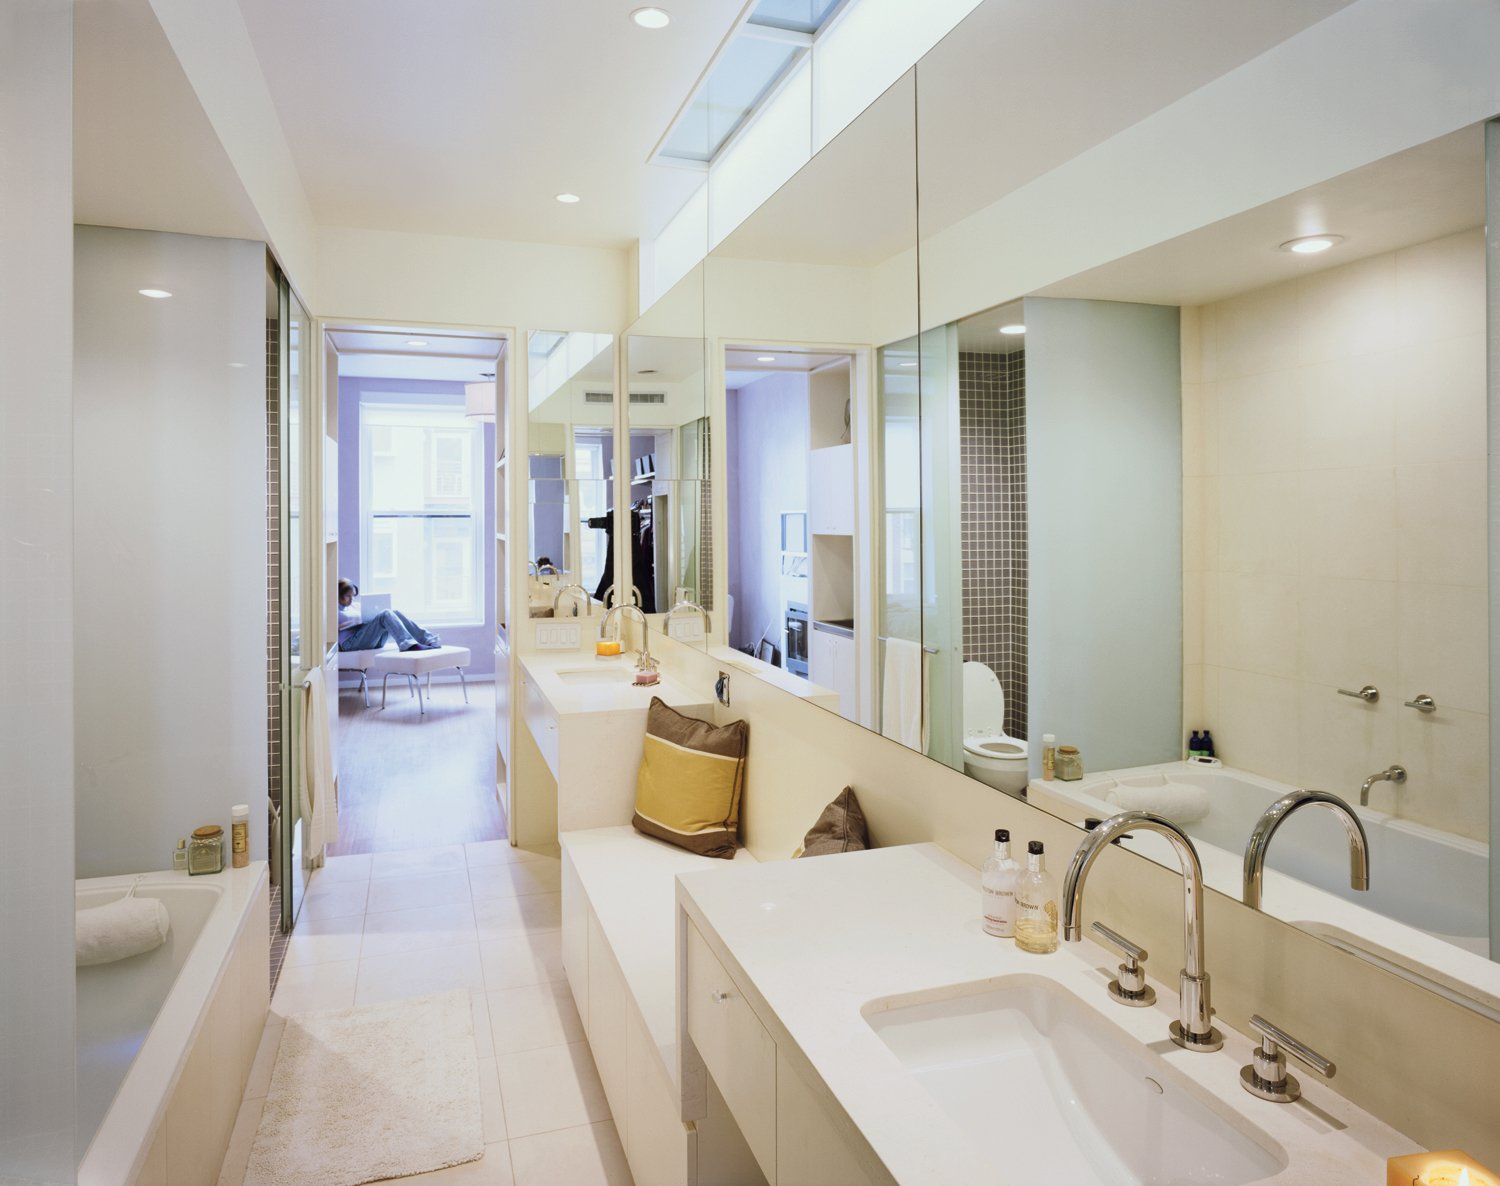 Bath Room, Undermount Sink, and Alcove Tub Martin's master bathroom, outfitted with a tub tricked out with jets and chromatherapy lights, allows her to soak in the luxury of her own home.  Photo 3 of 7 in Modern Rowhouse Renovation in New York